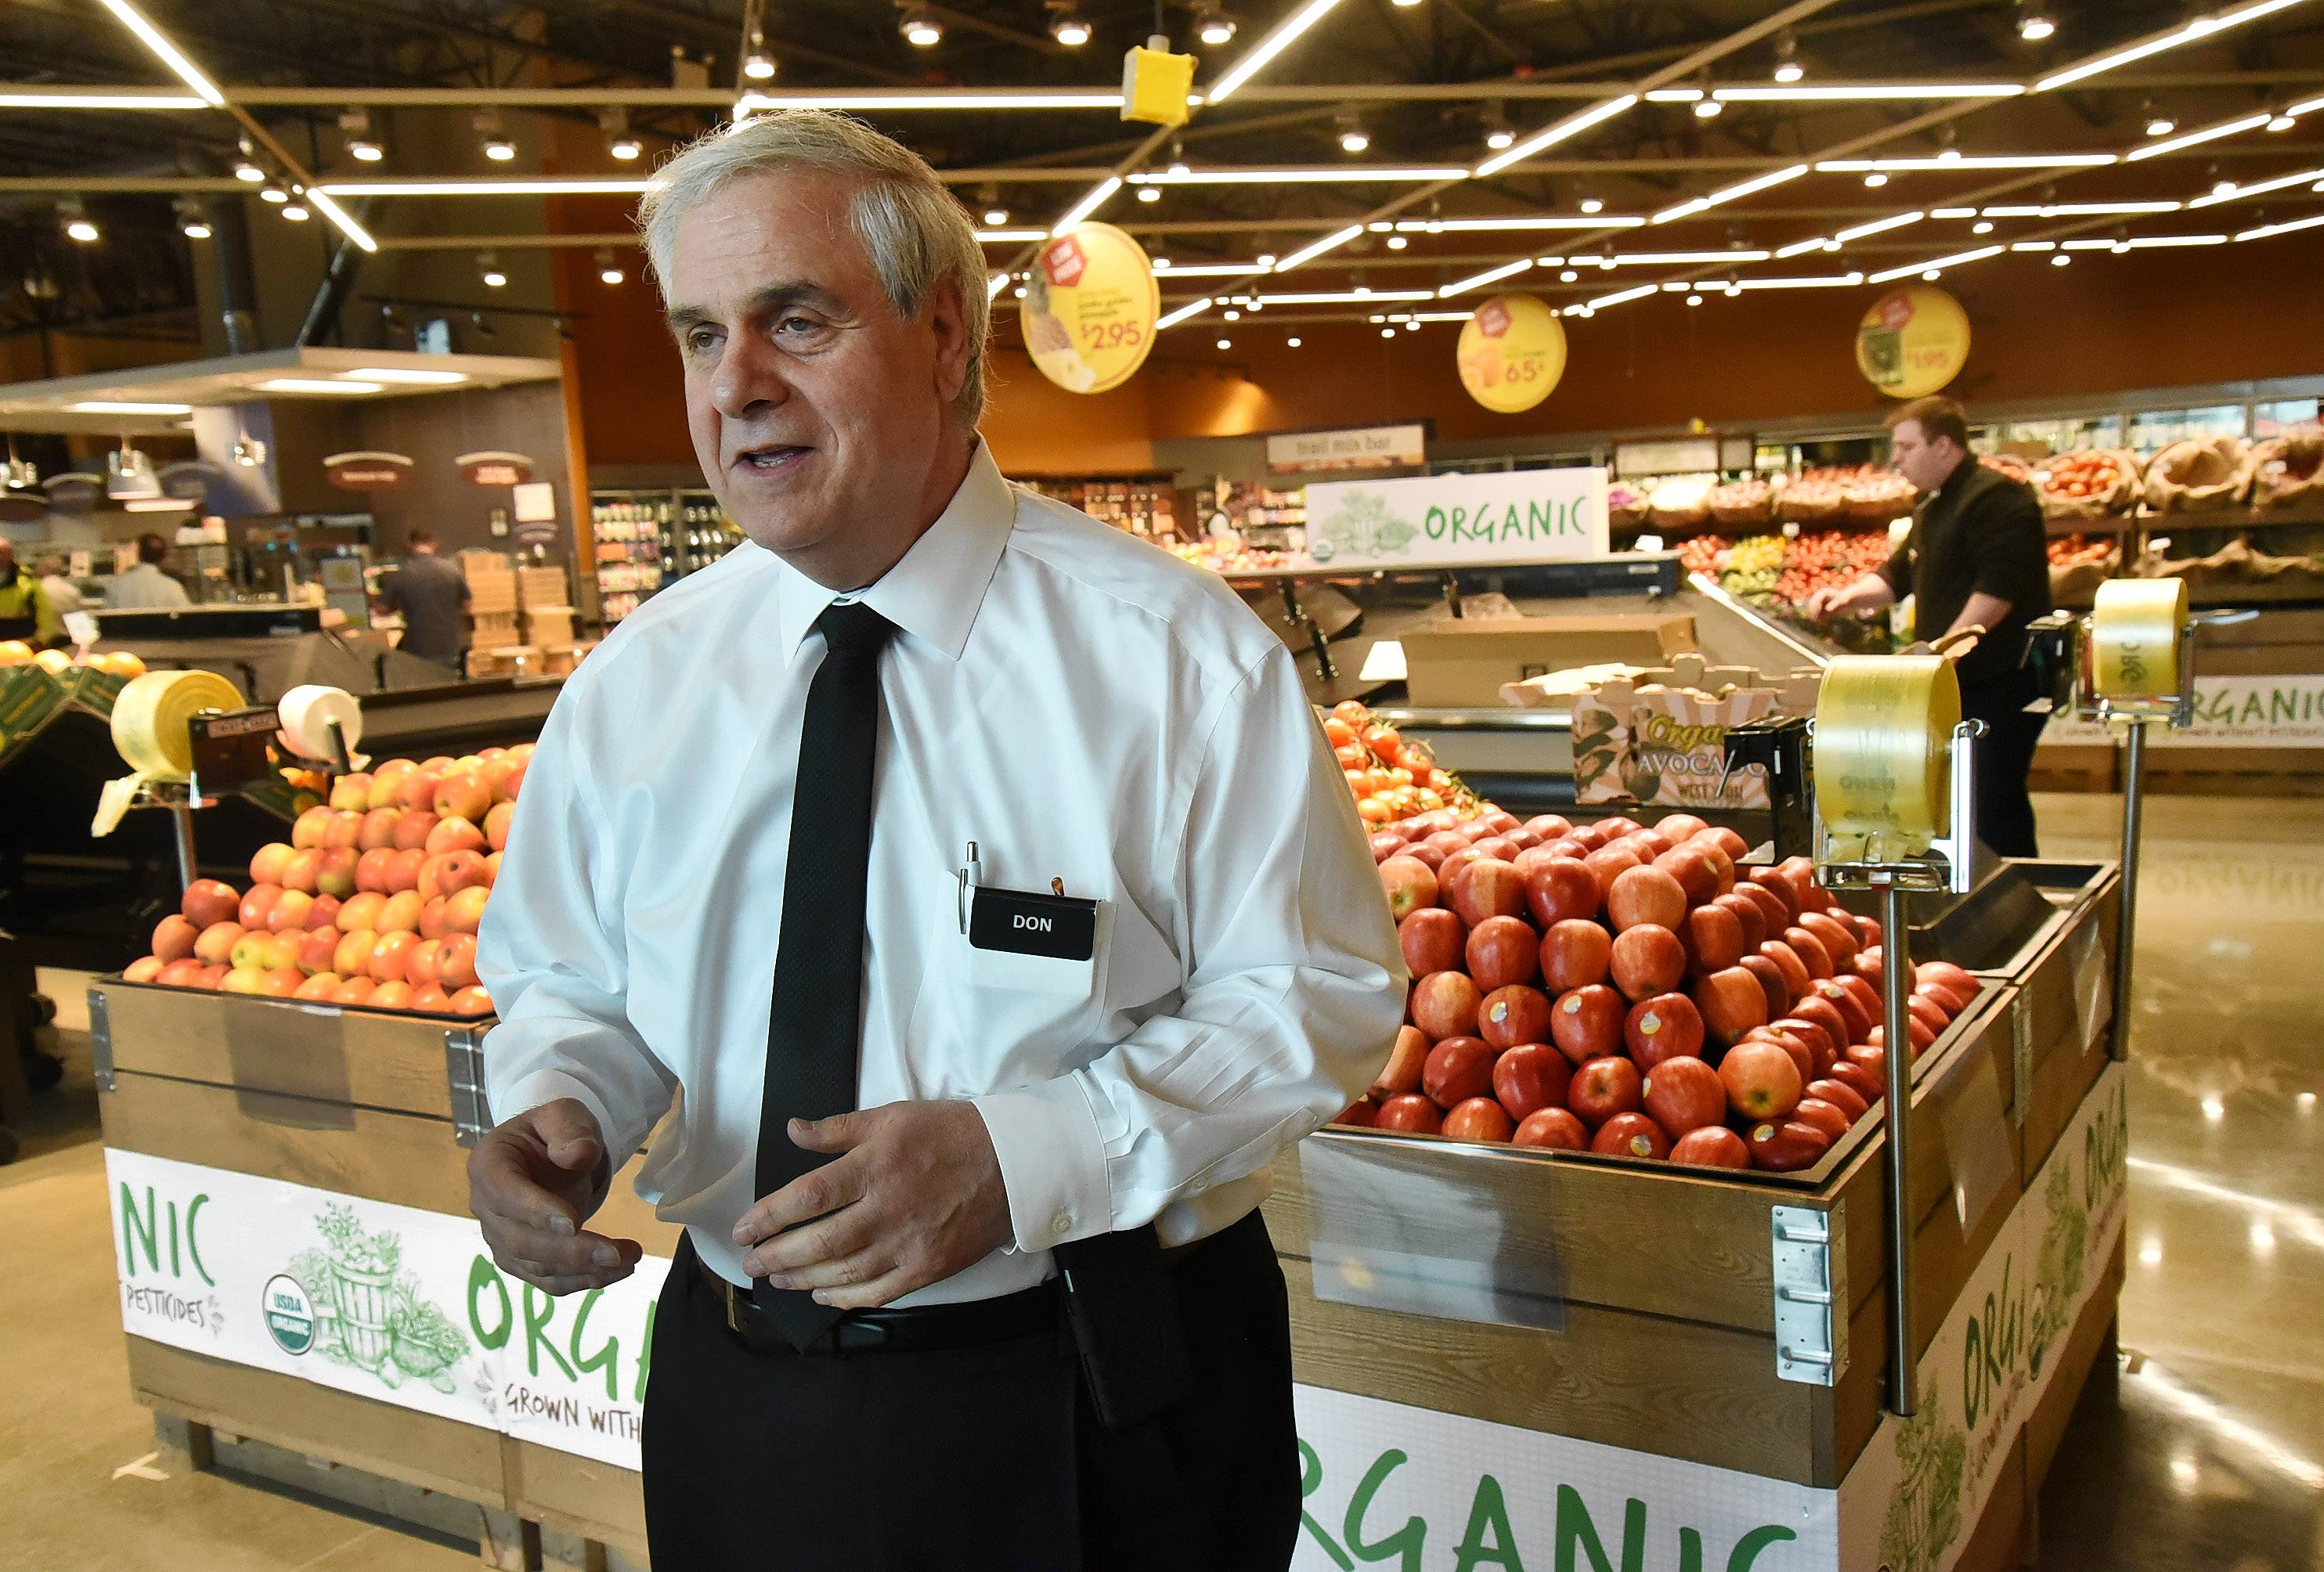 Mariano's President Don Rosanova talks about the opening of the new store in Des Plaines. Officials held a ceremonial ribbon-cutting Monday in preparation for Tuesday's public opening.